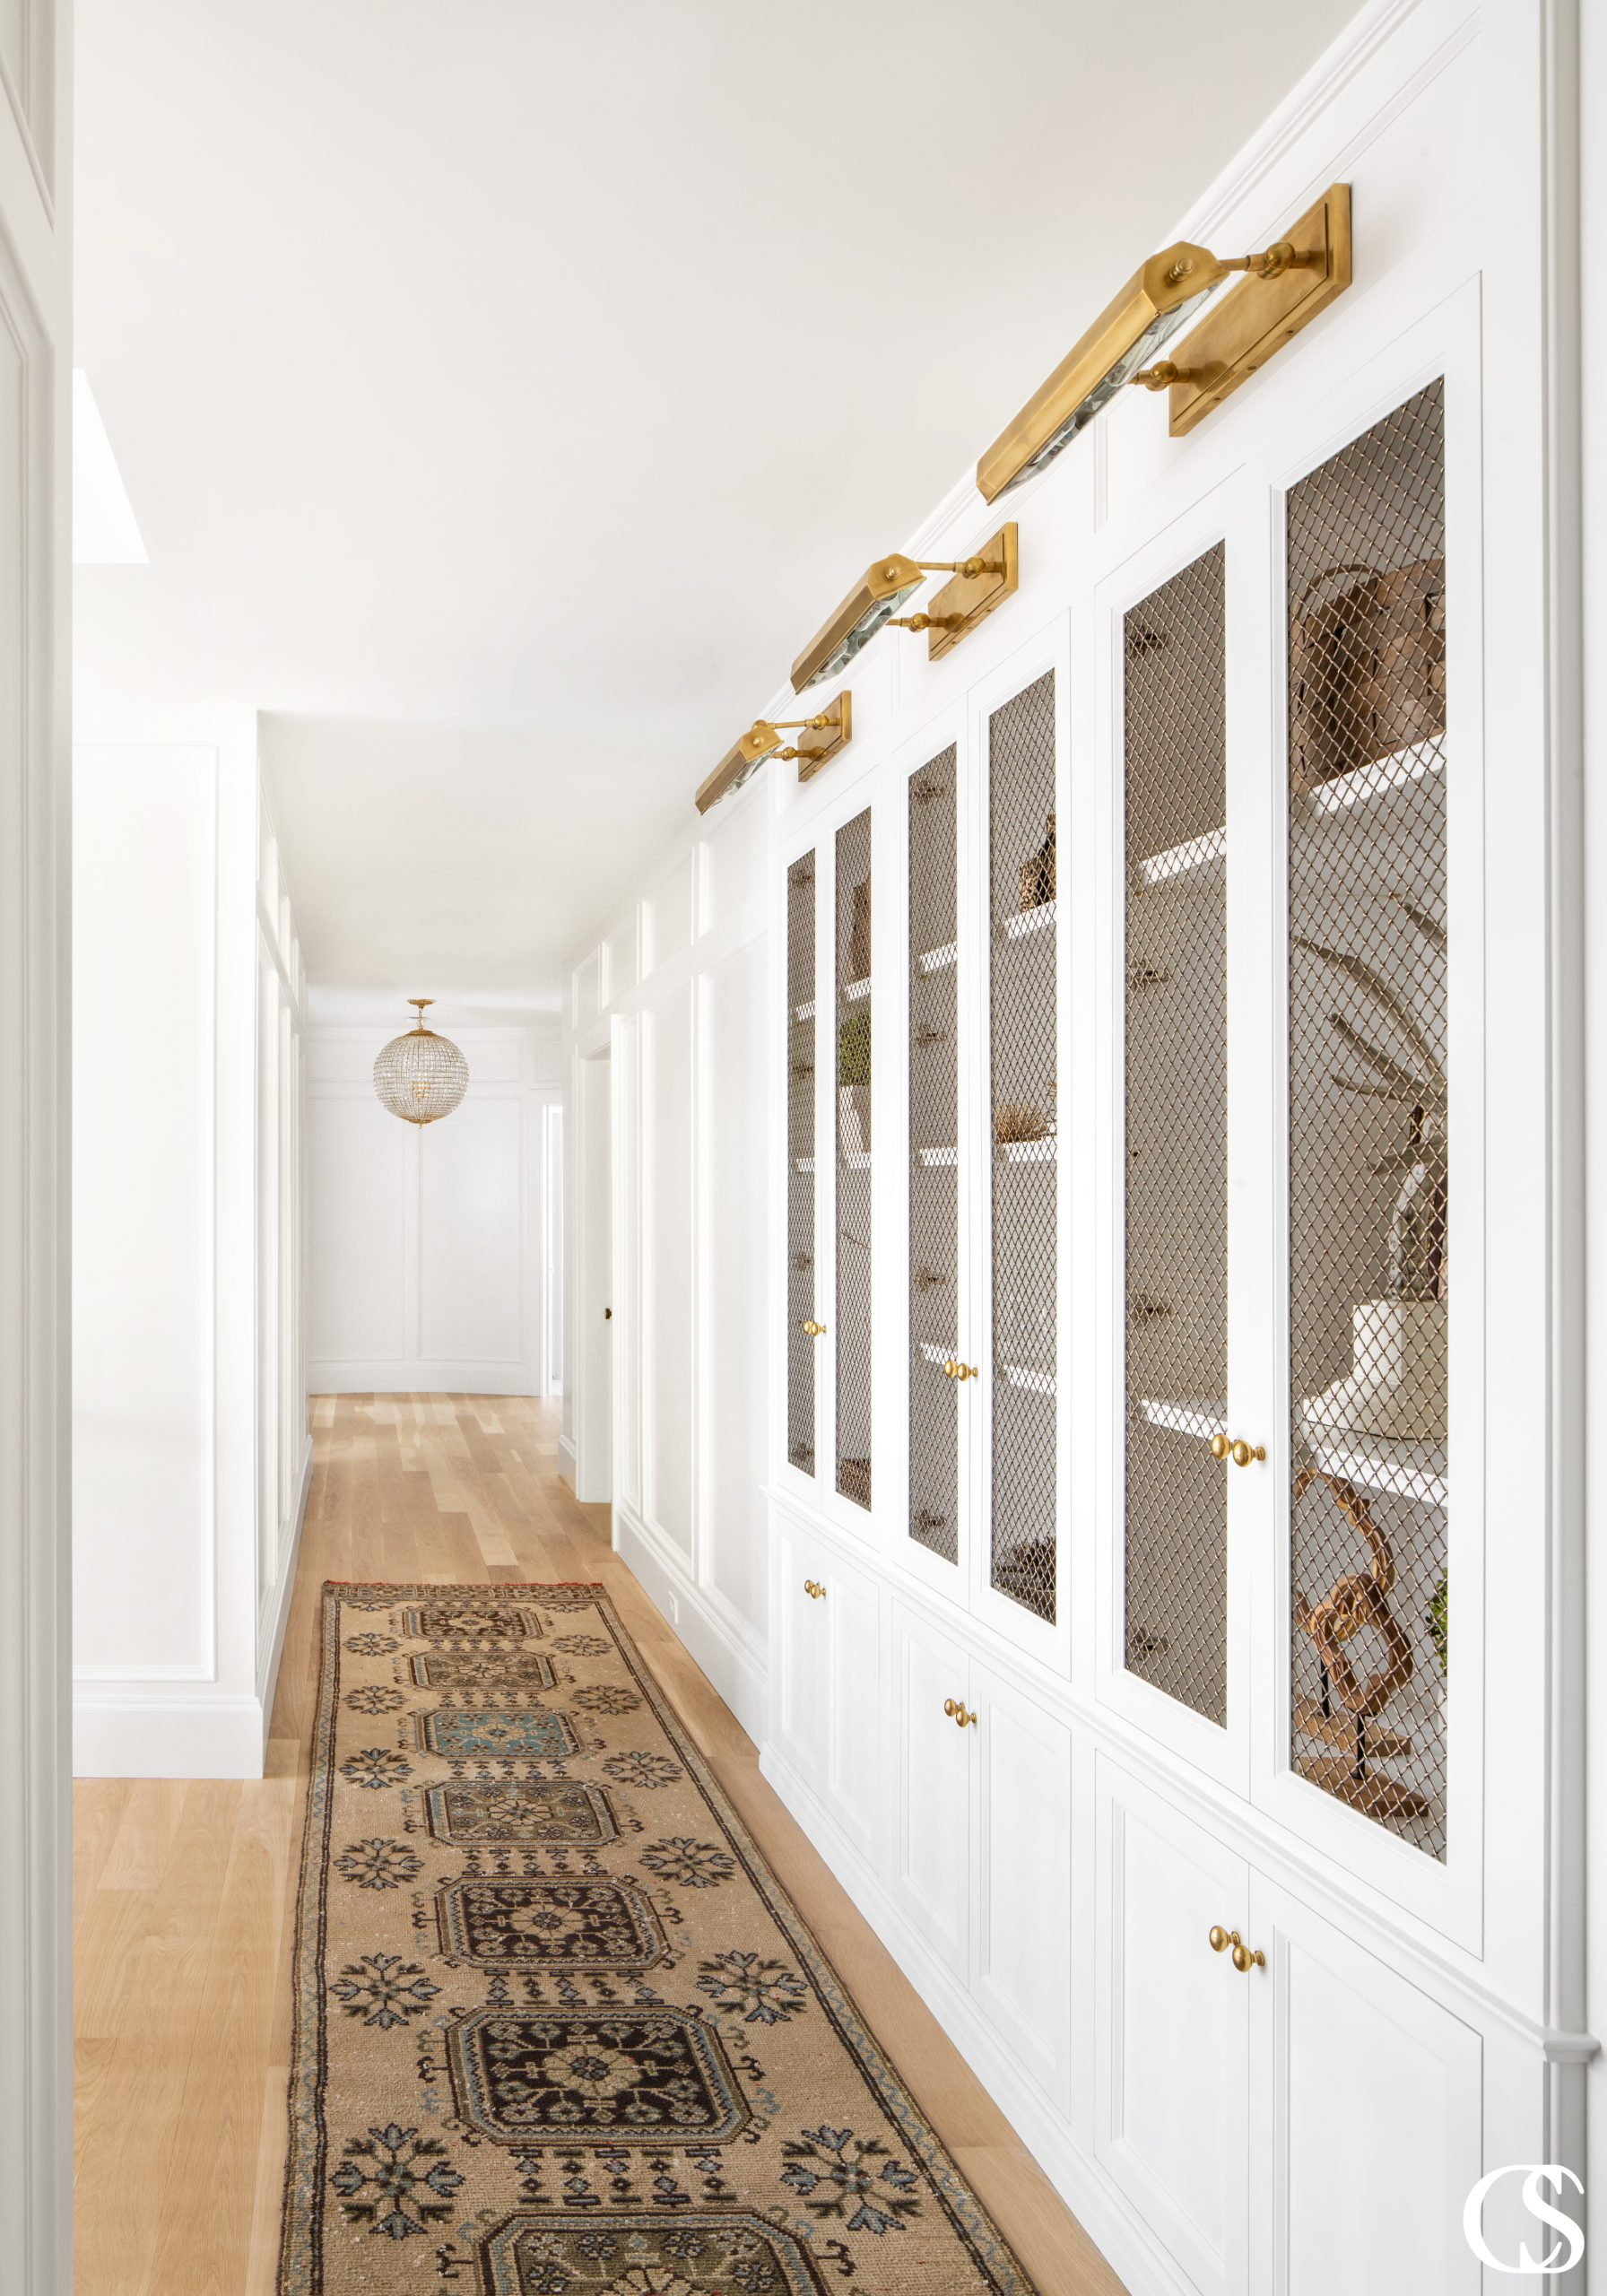 Make a hallway more than just bare walls and doorways with custom built in design like this! It's a beautiful way to create space and add character to a home.